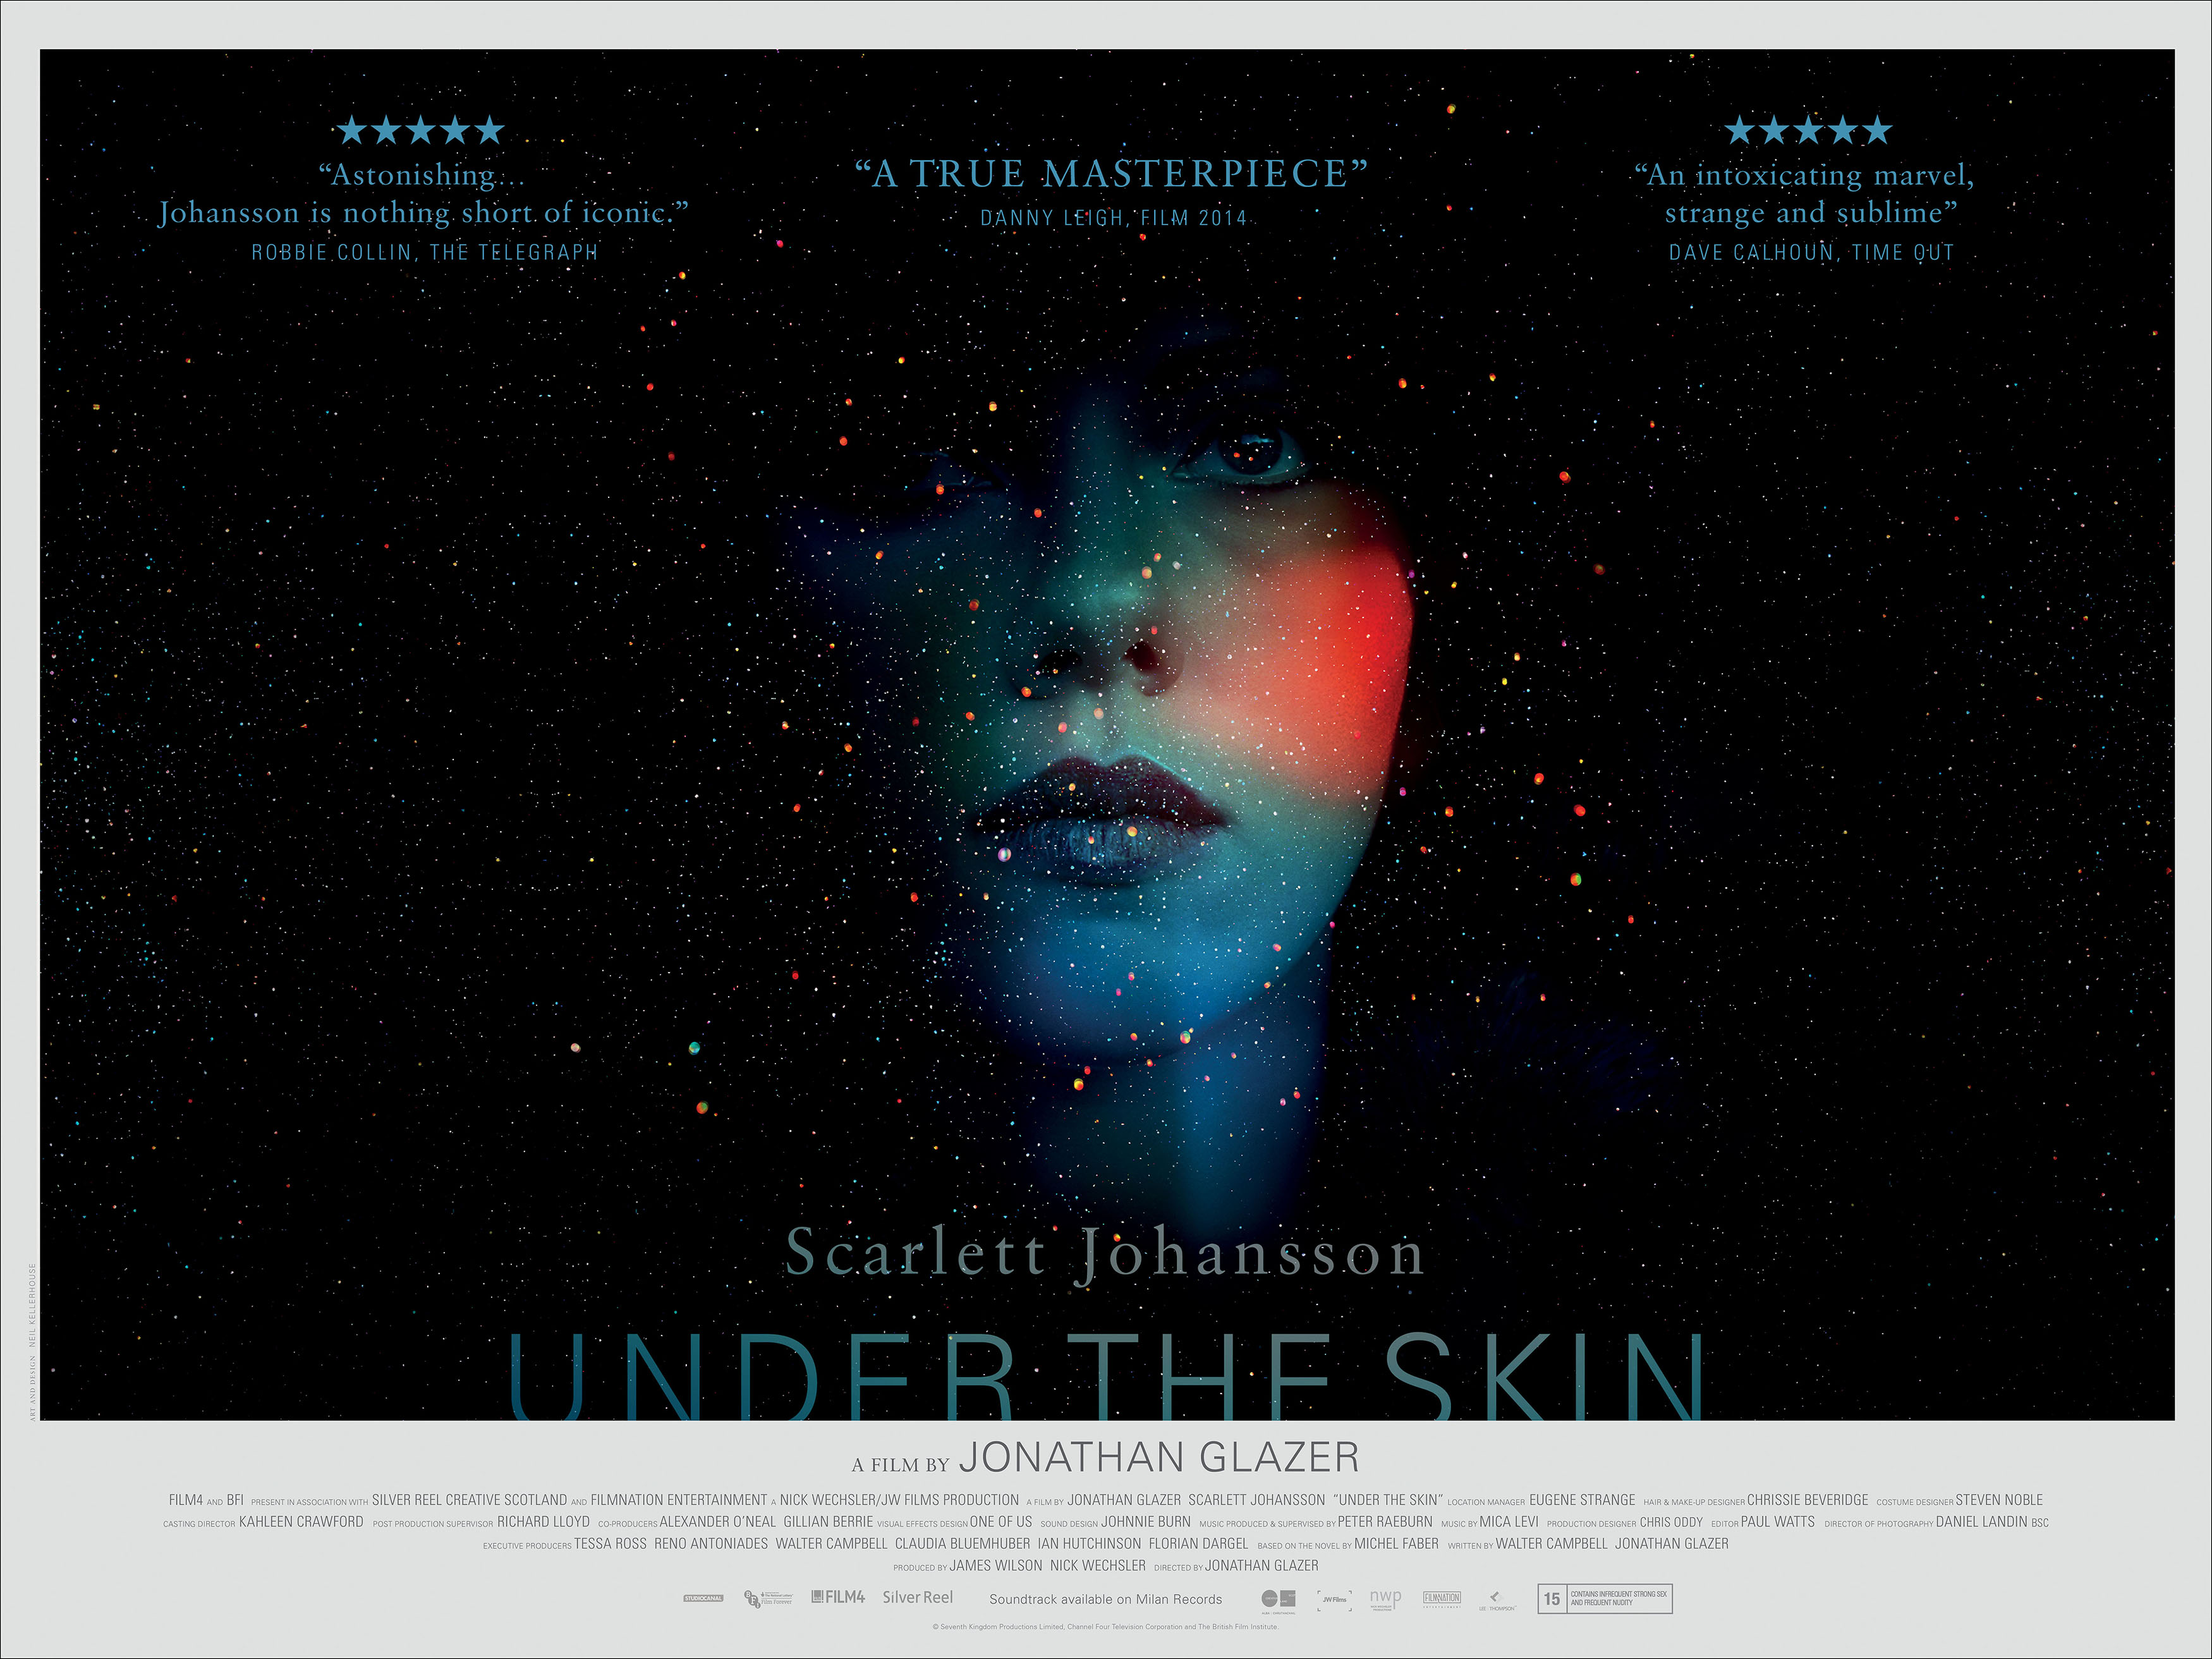 UNDER THE SKIN-Official Poster Banner PROMO BANNER XXLG-11FEVEREIRO2014